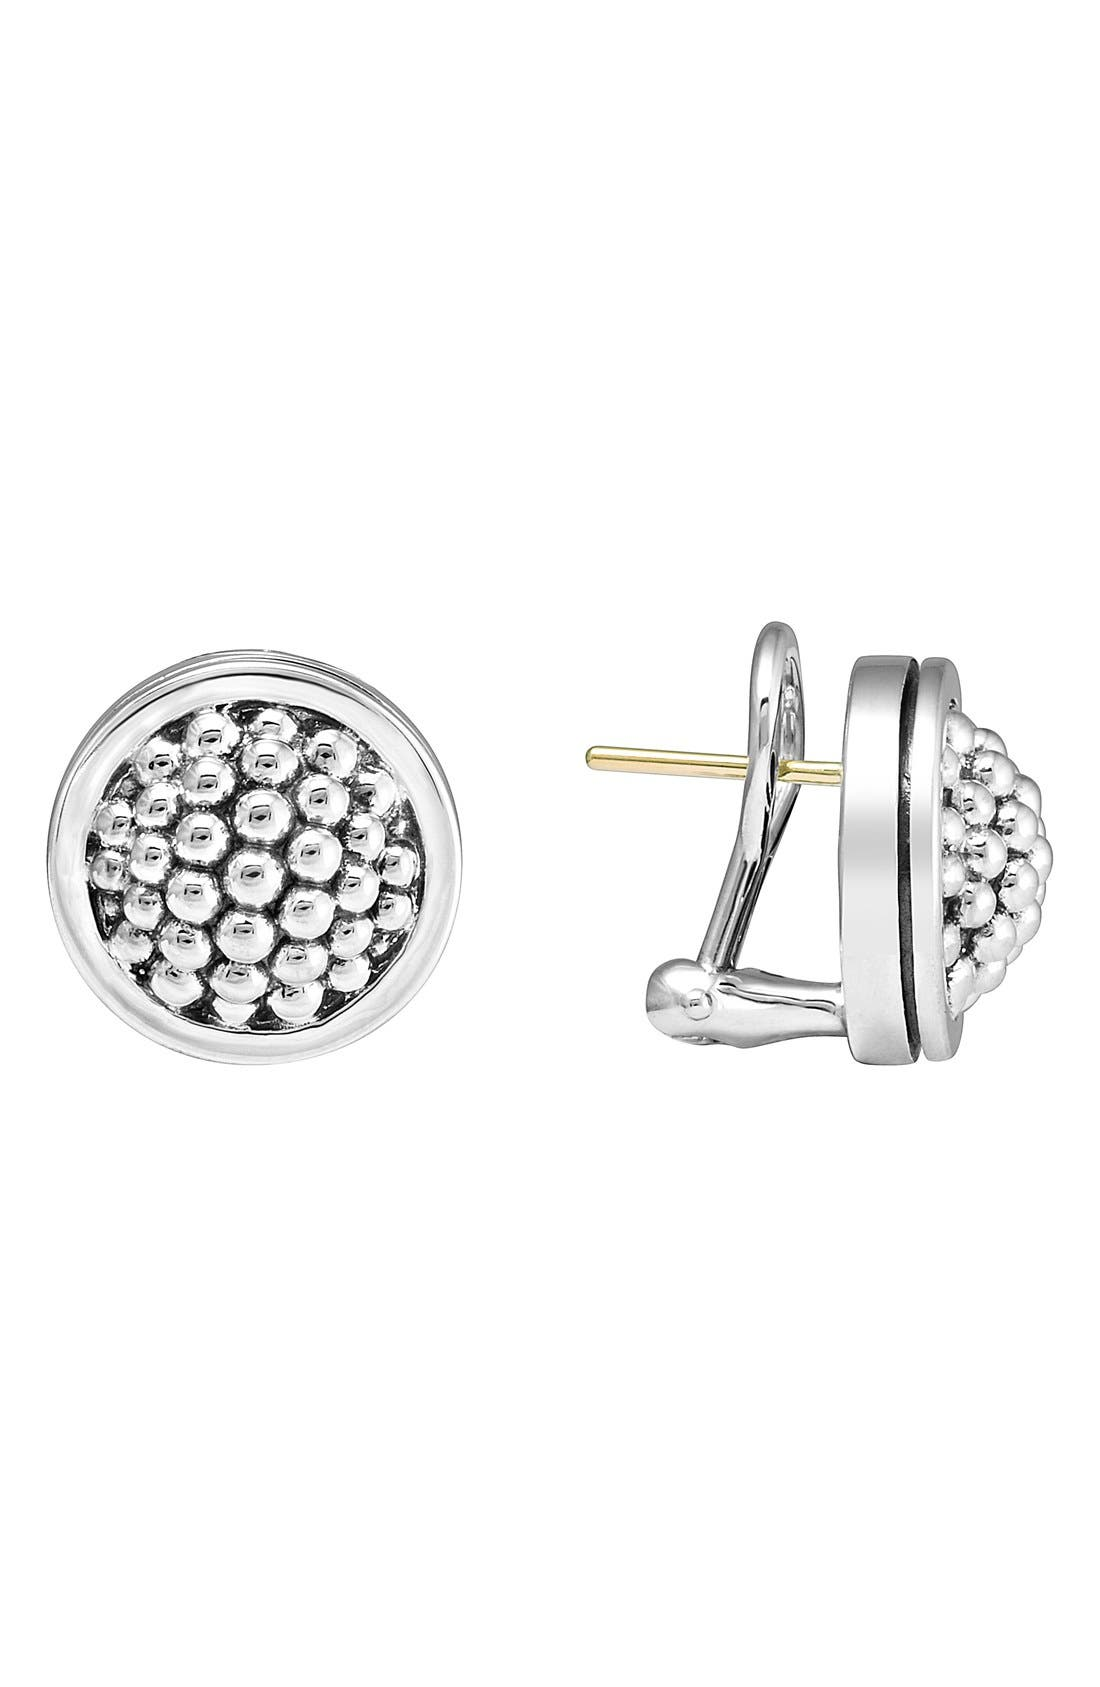 Main Image - LAGOS Caviar Stud Earrings